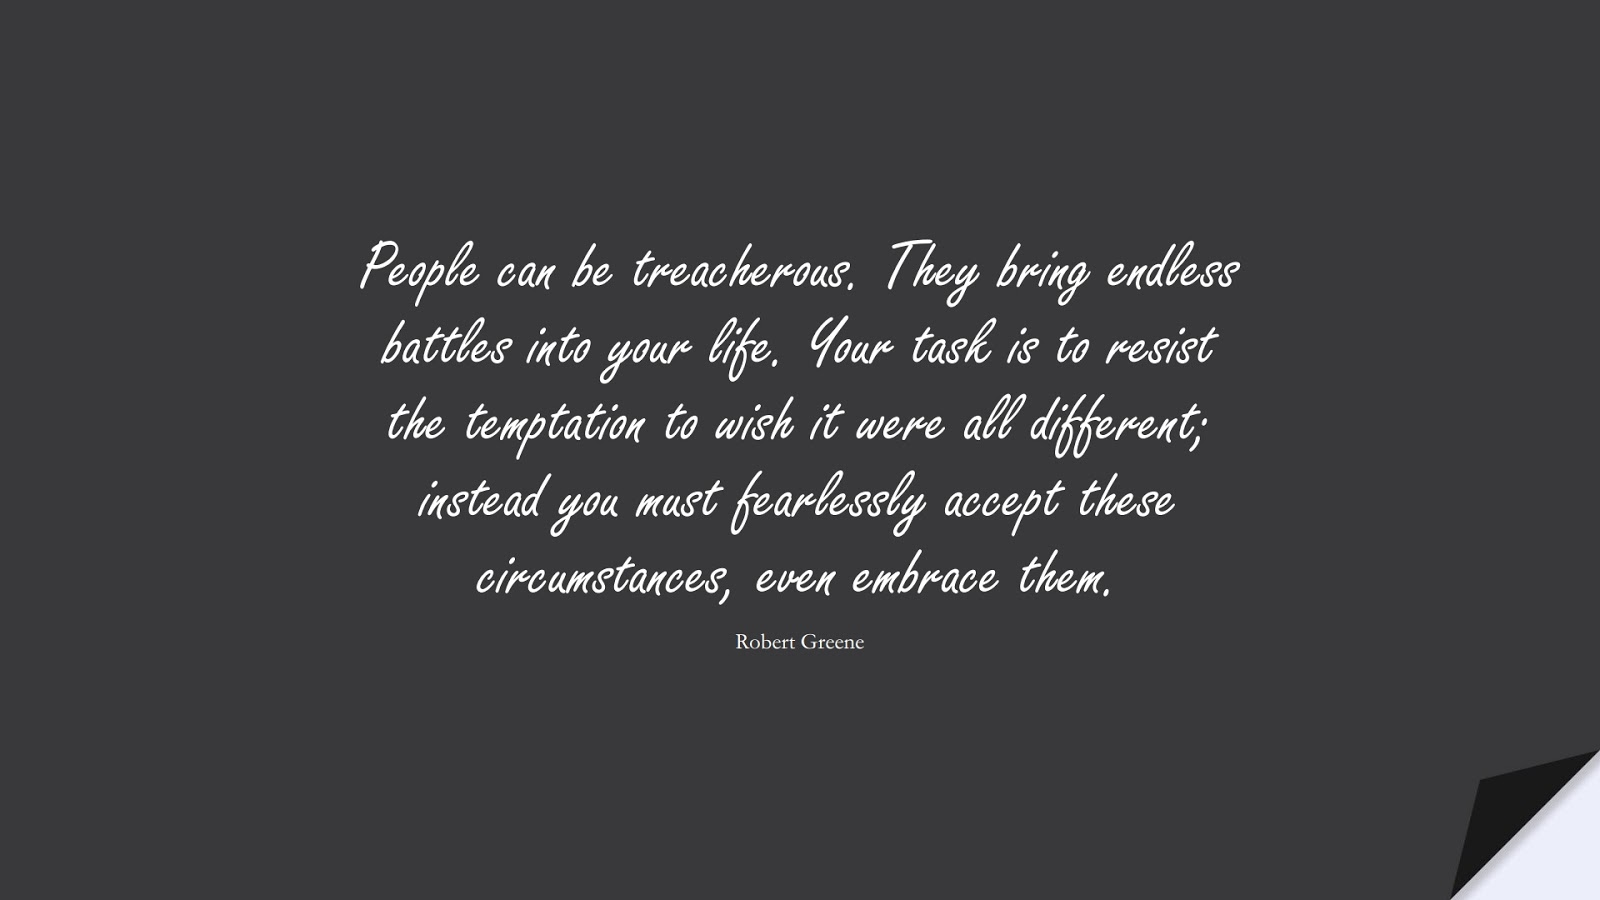 People can be treacherous. They bring endless battles into your life. Your task is to resist the temptation to wish it were all different; instead you must fearlessly accept these circumstances, even embrace them. (Robert Greene);  #RelationshipQuotes